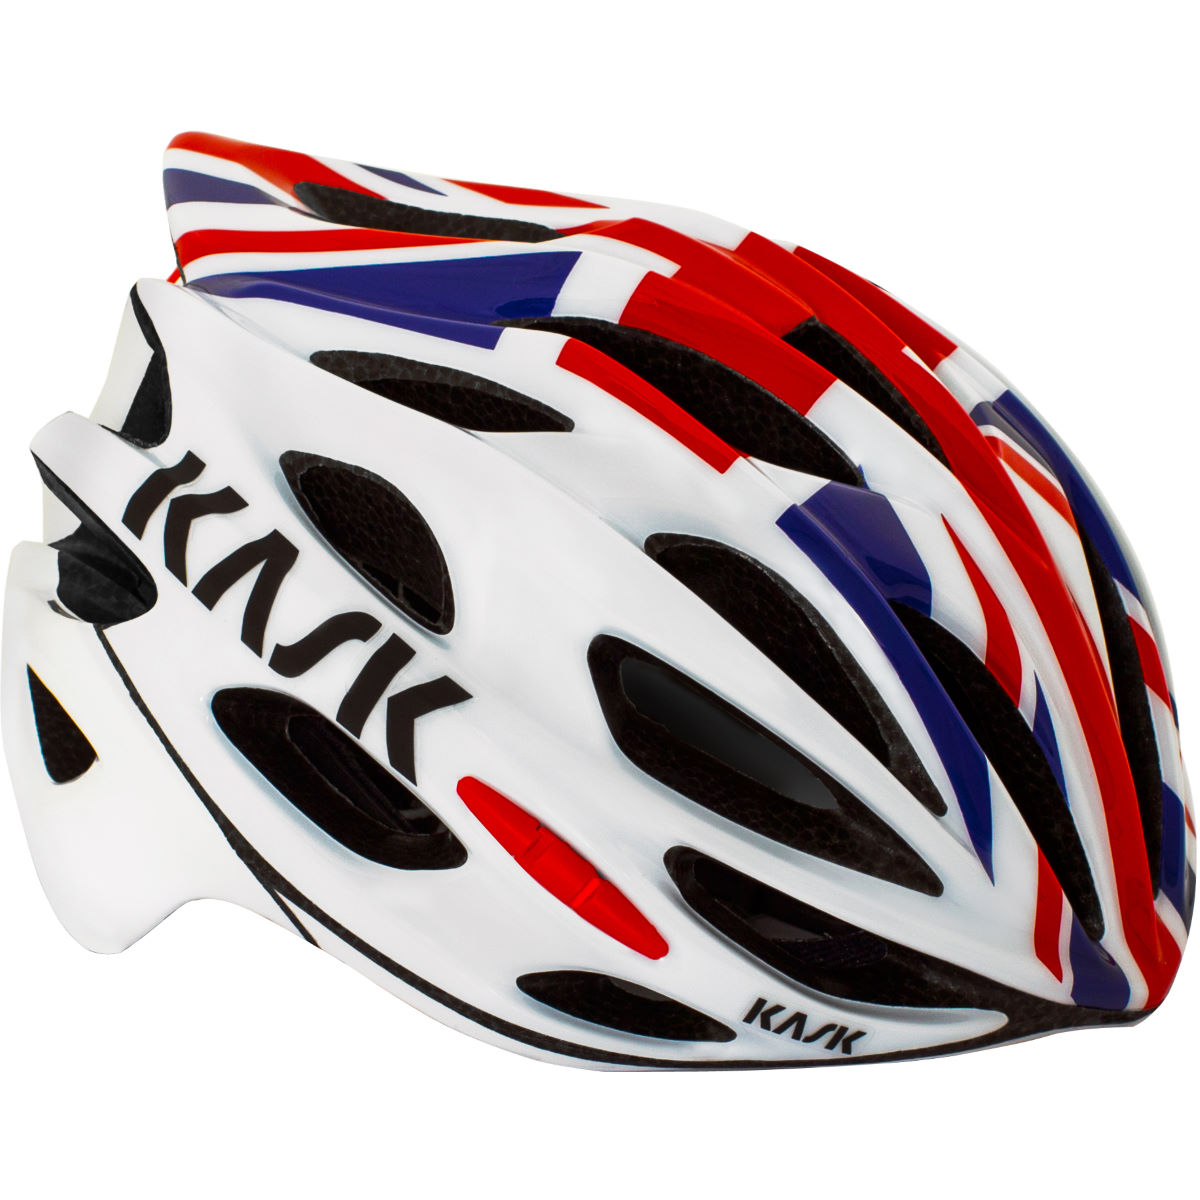 Casque de route Kask Mojito (édition du Team GB) - Large 59 - 62cm